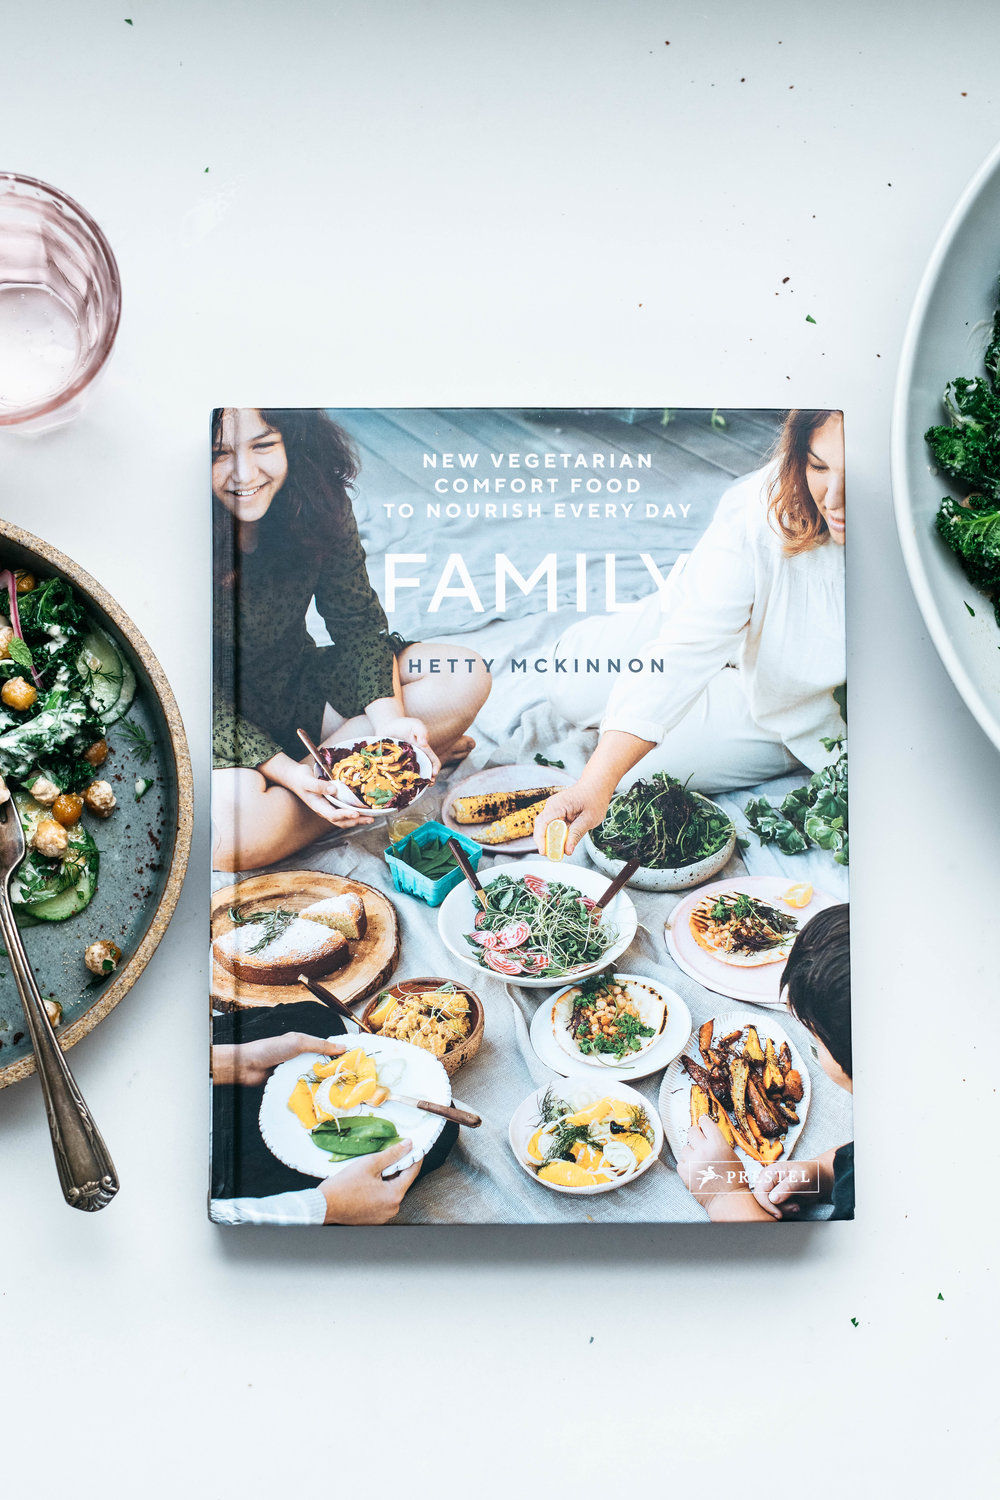 """THE DECONSTRUCTED FALAFEL SALAD FROM """"FAMILY"""" 